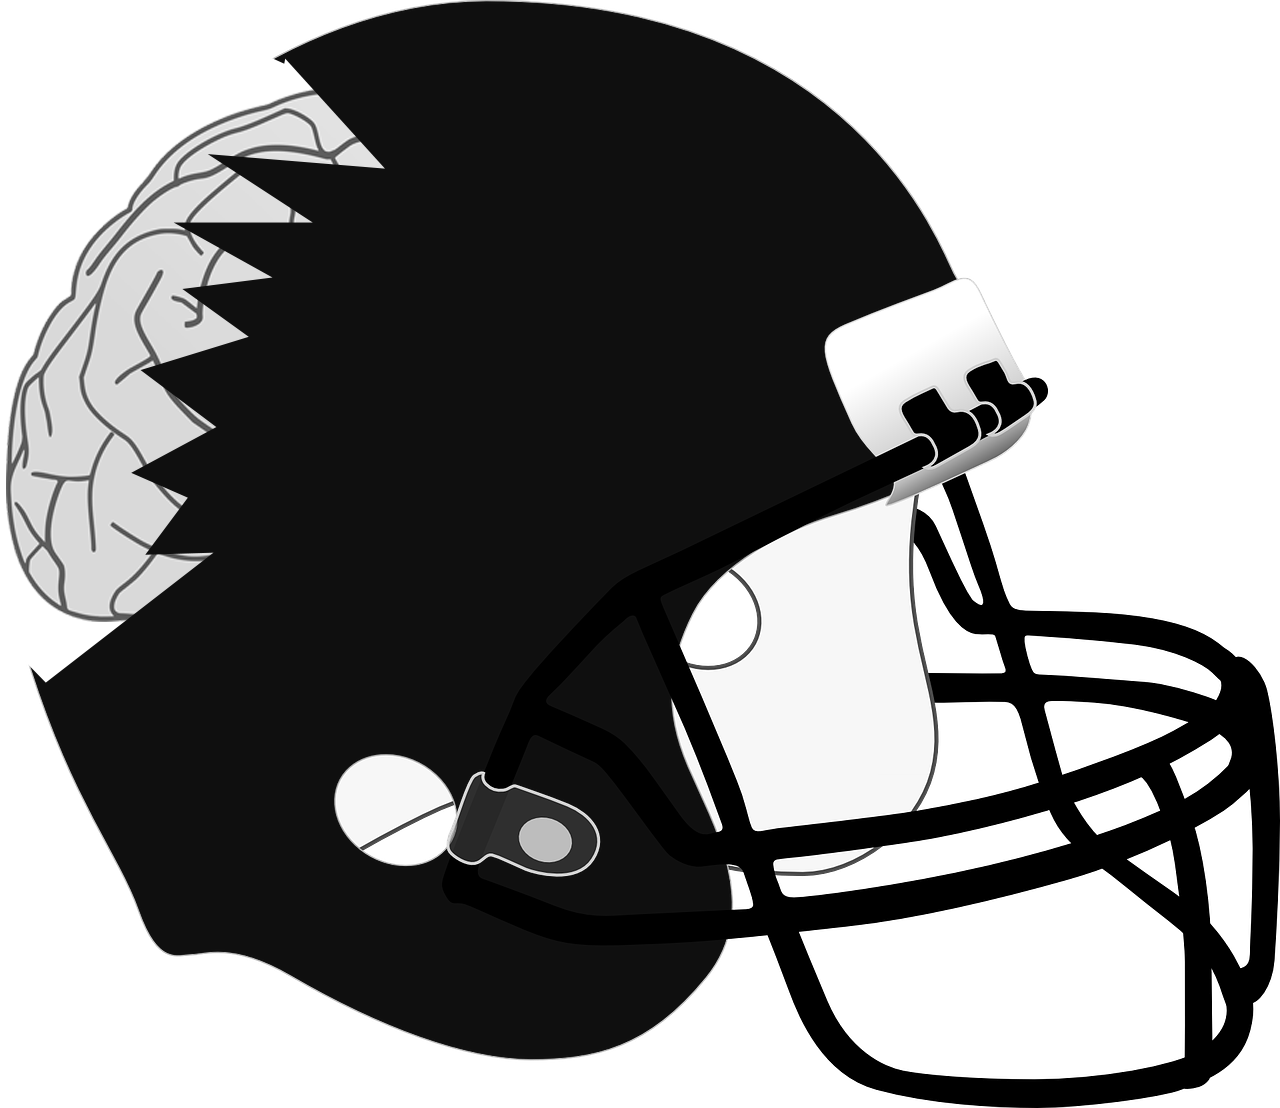 Athlete drawing helmet. Even after crackdown concussions